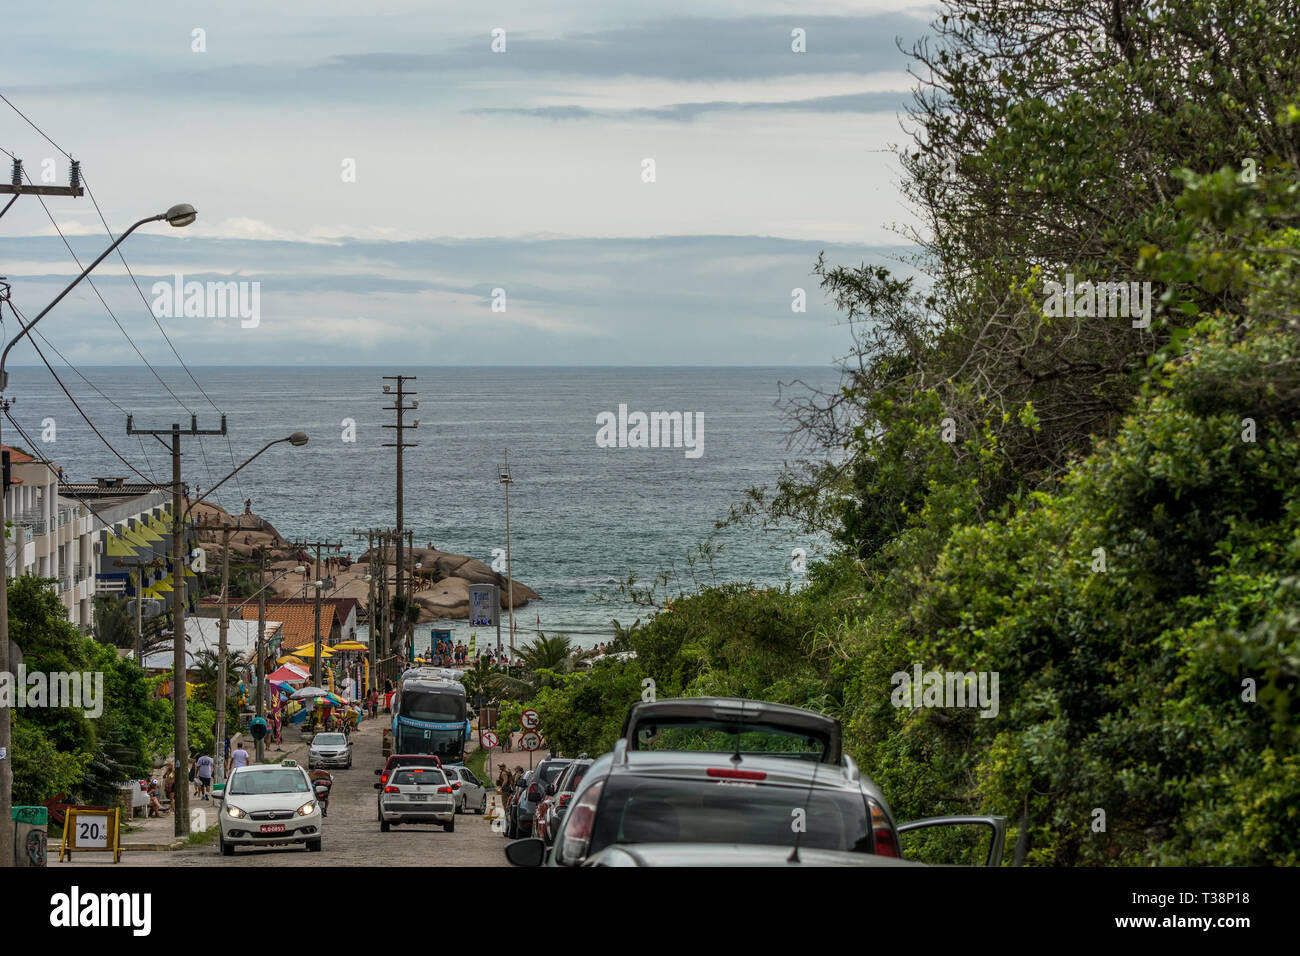 2019, January. Florianopolis, Brazil. Street access to Joaquina Beach. Stock Photo